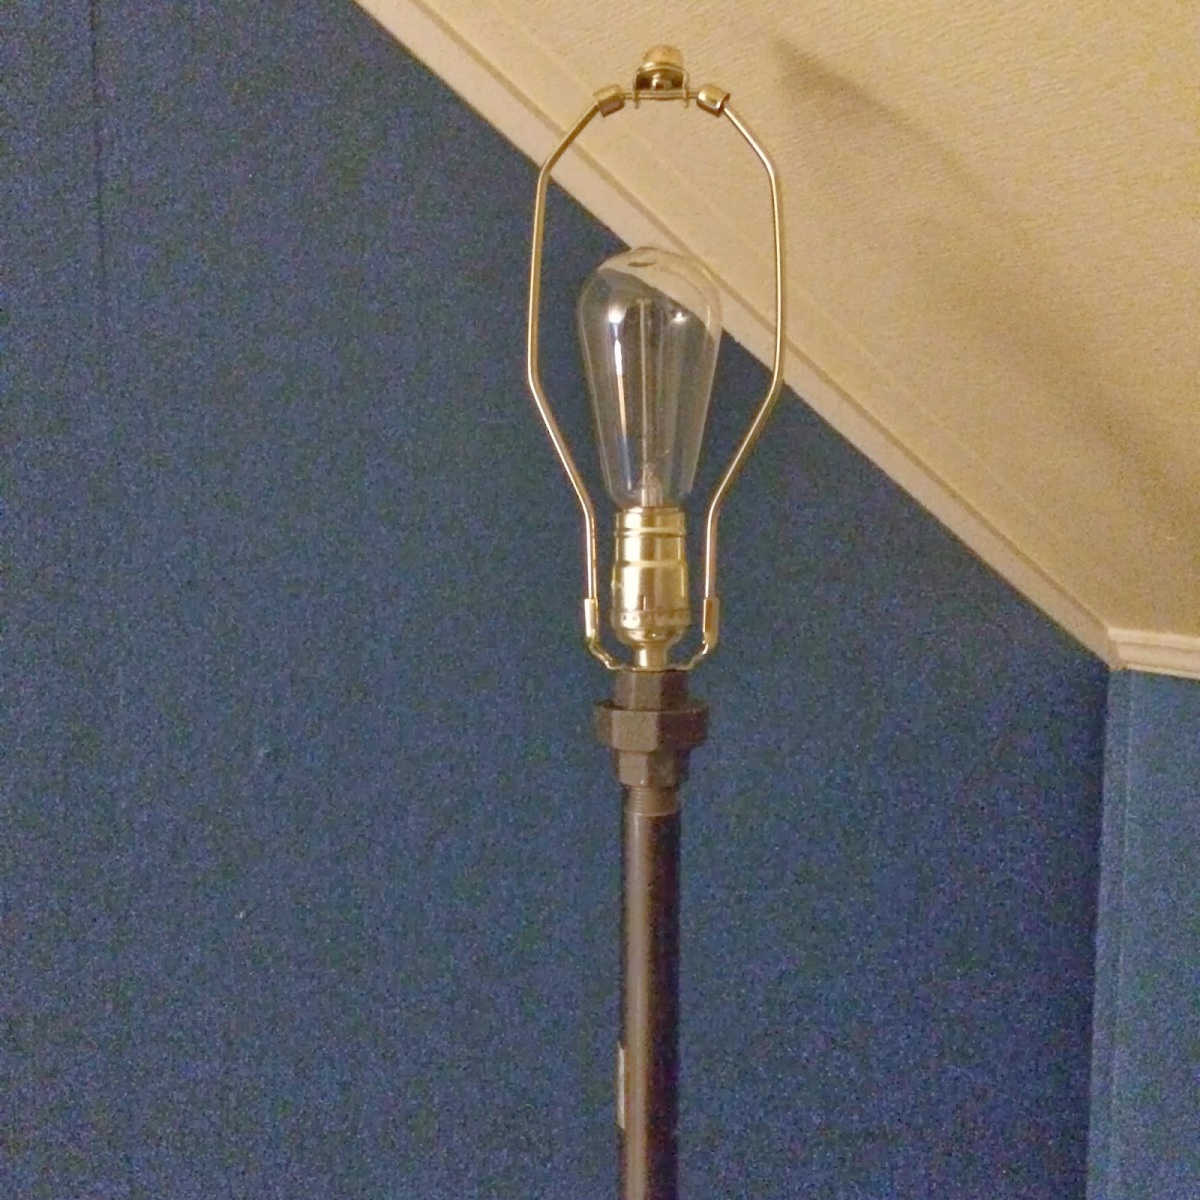 Diy Industrial Floor Lamp Invisibly Imperfect